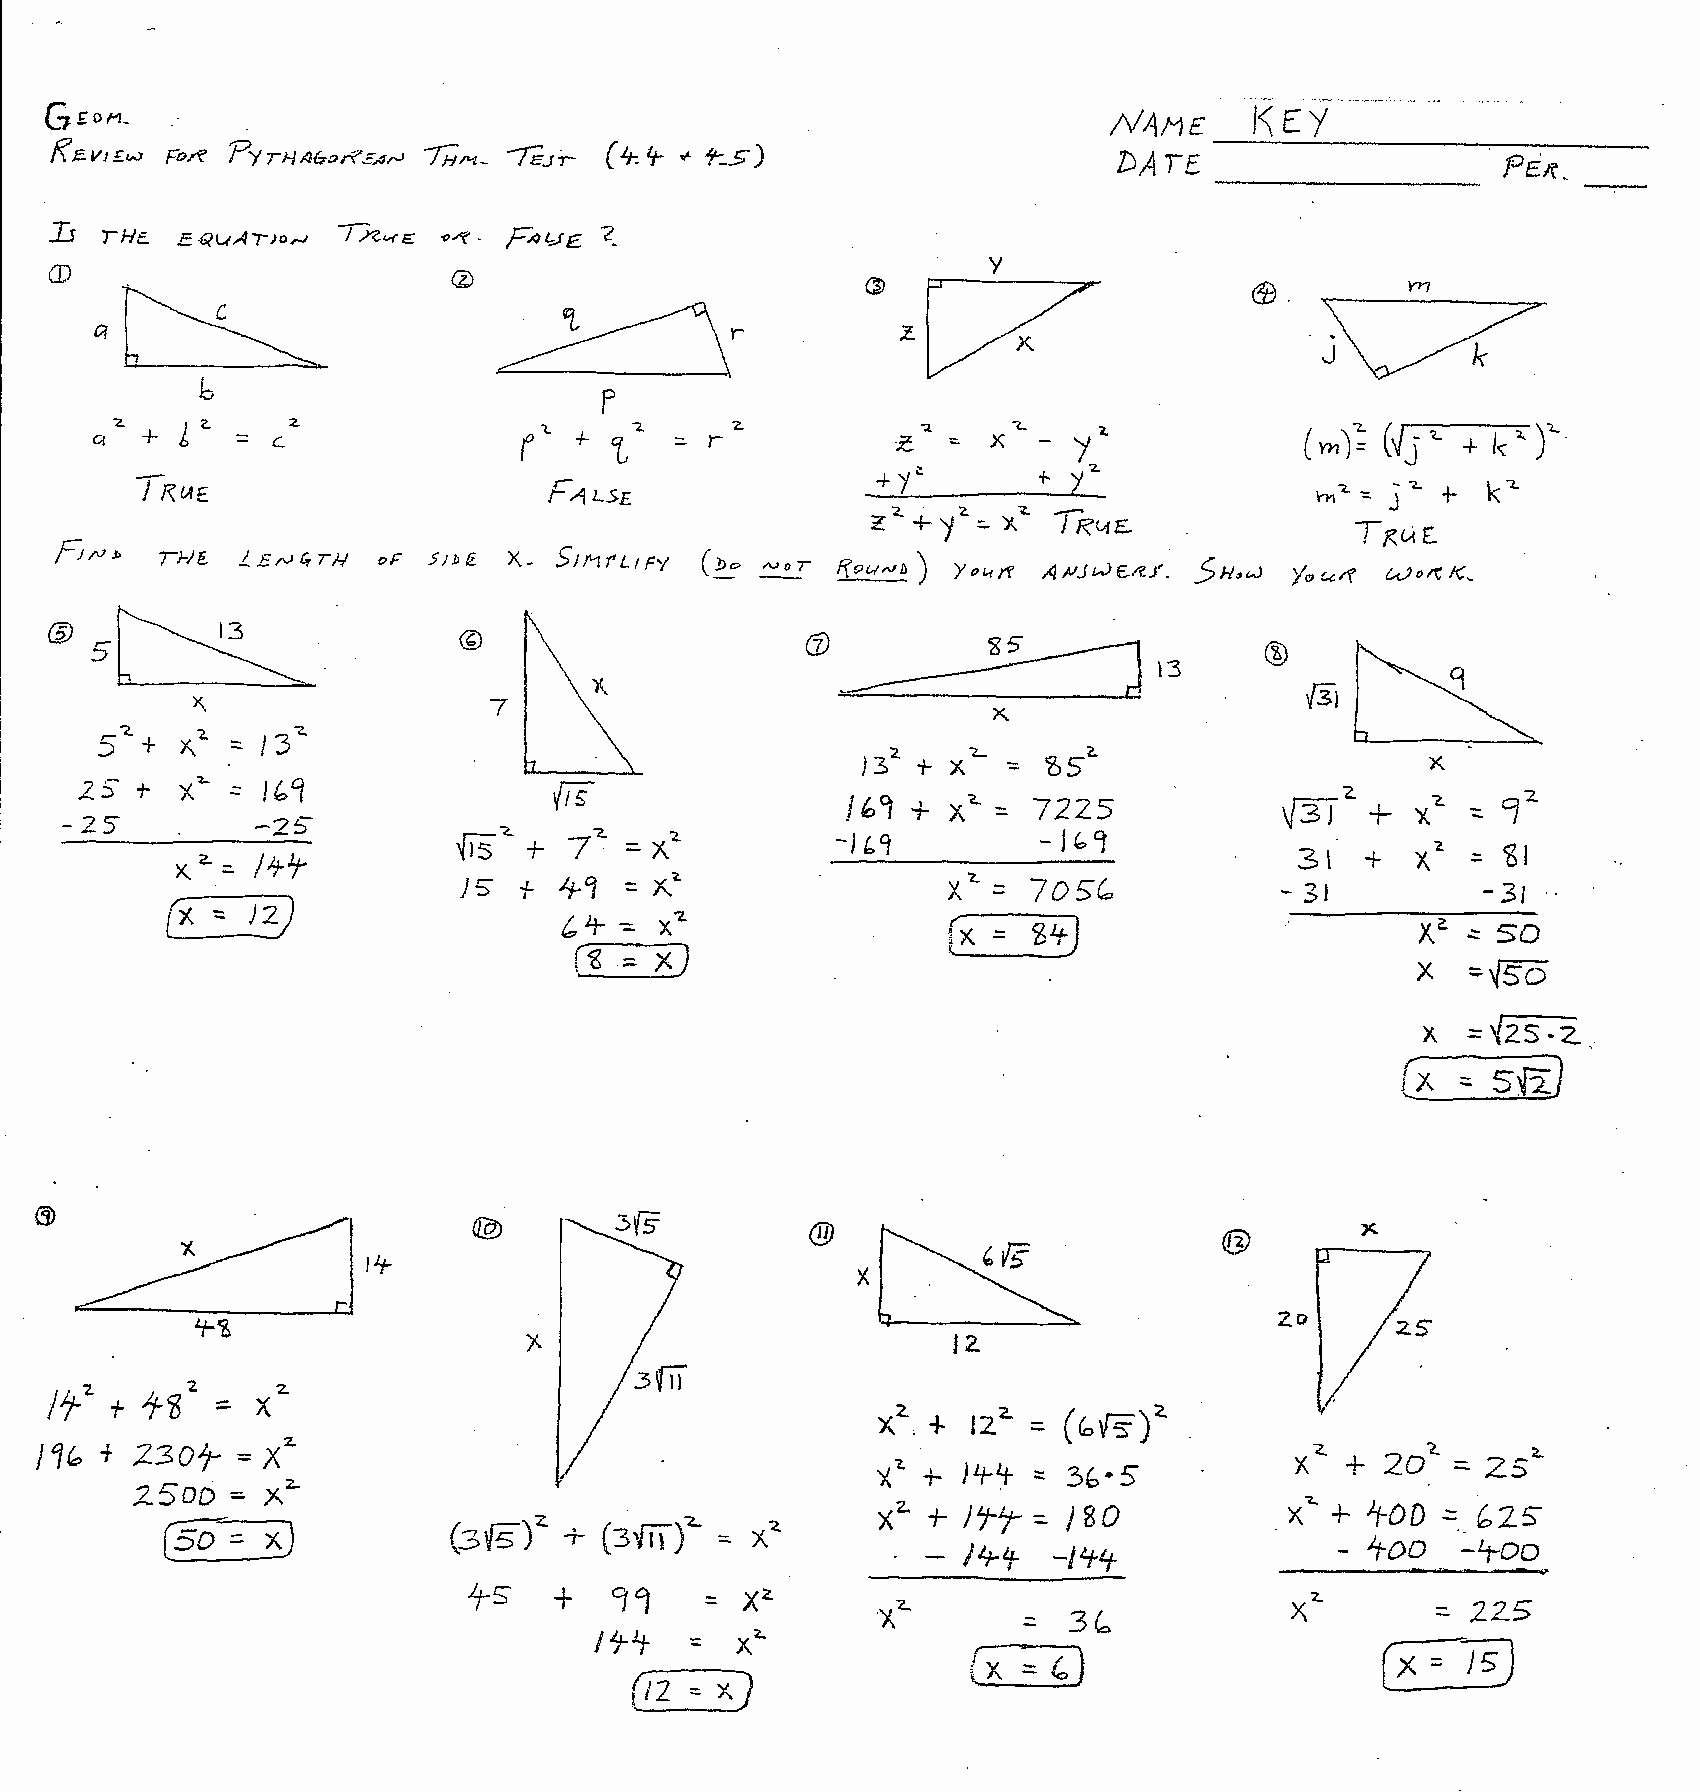 Congruent Triangles Worksheet with Answers Luxury 6 Best Of Congruent Triangles Worksheet with Answer